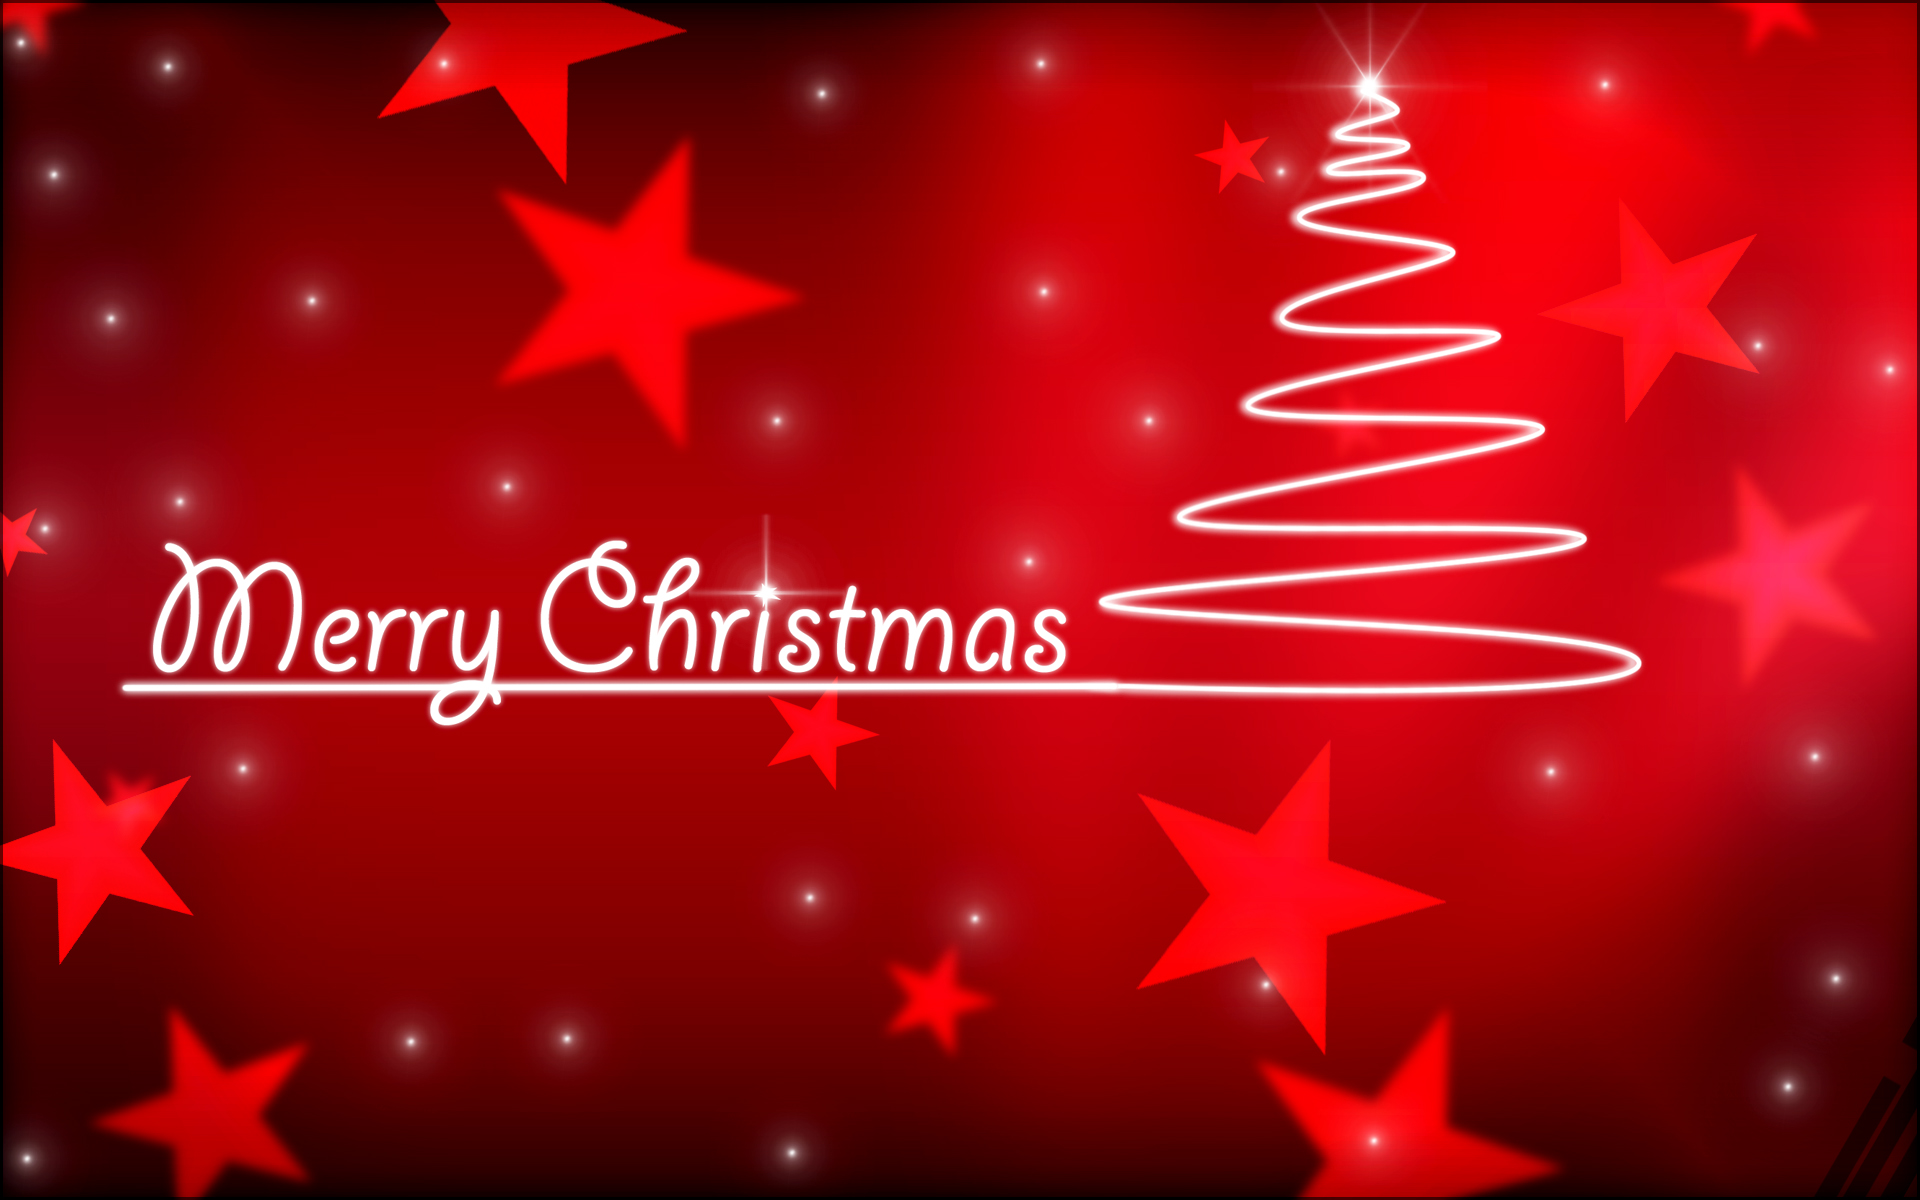 merry xmas 2016 wishes - Images Merry Christmas